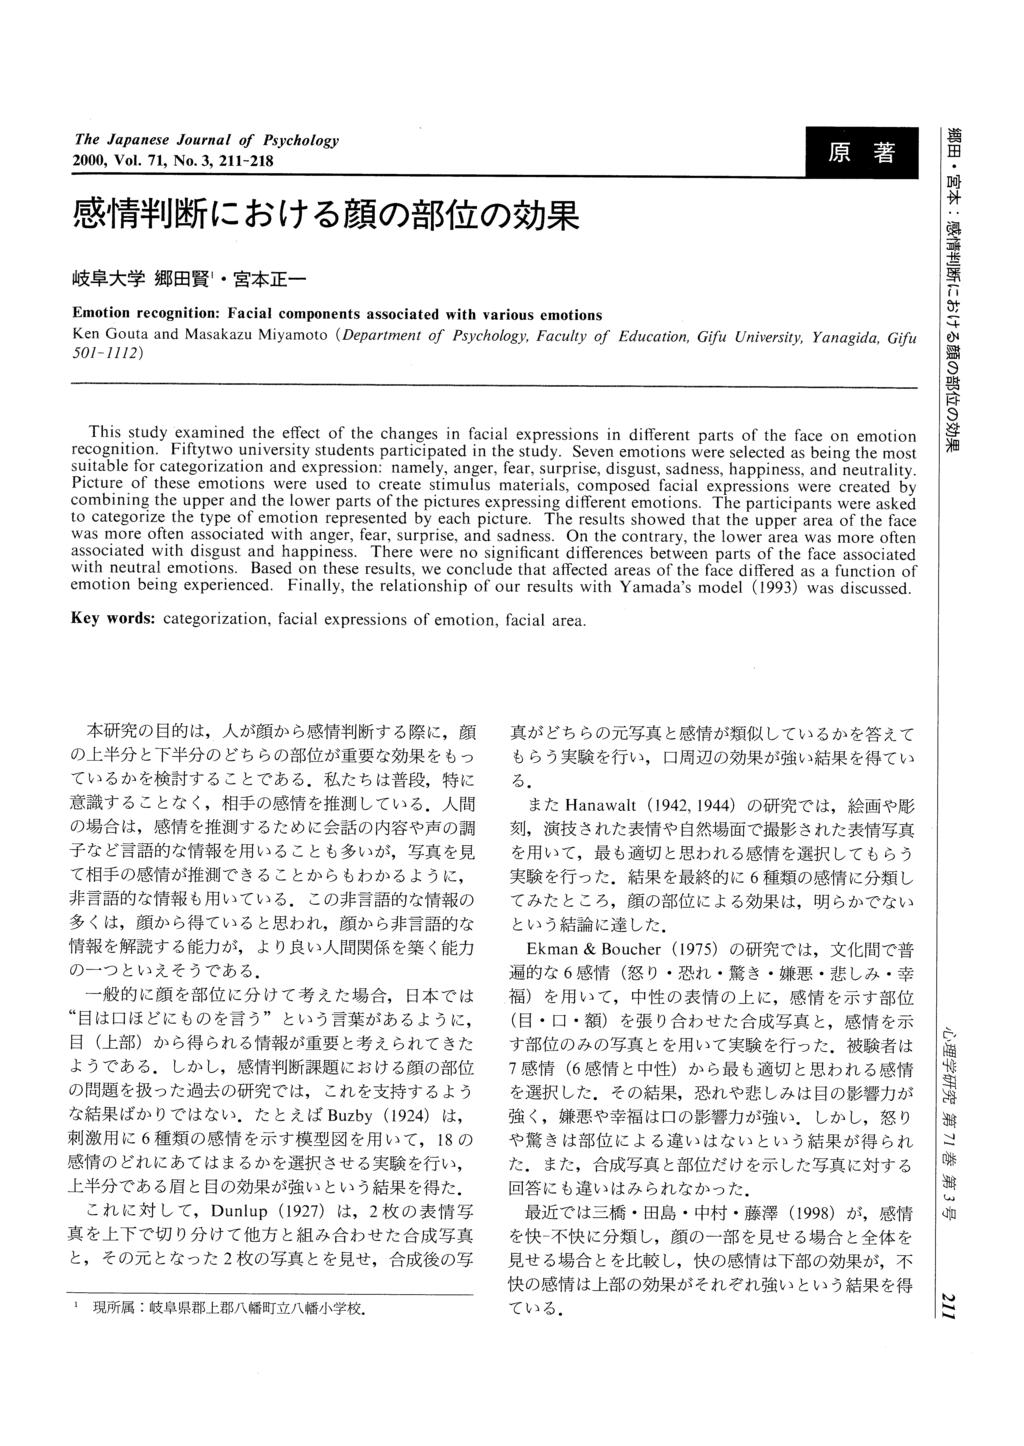 The Japanese Journal of Psychology 2000, Vol. 71, No.